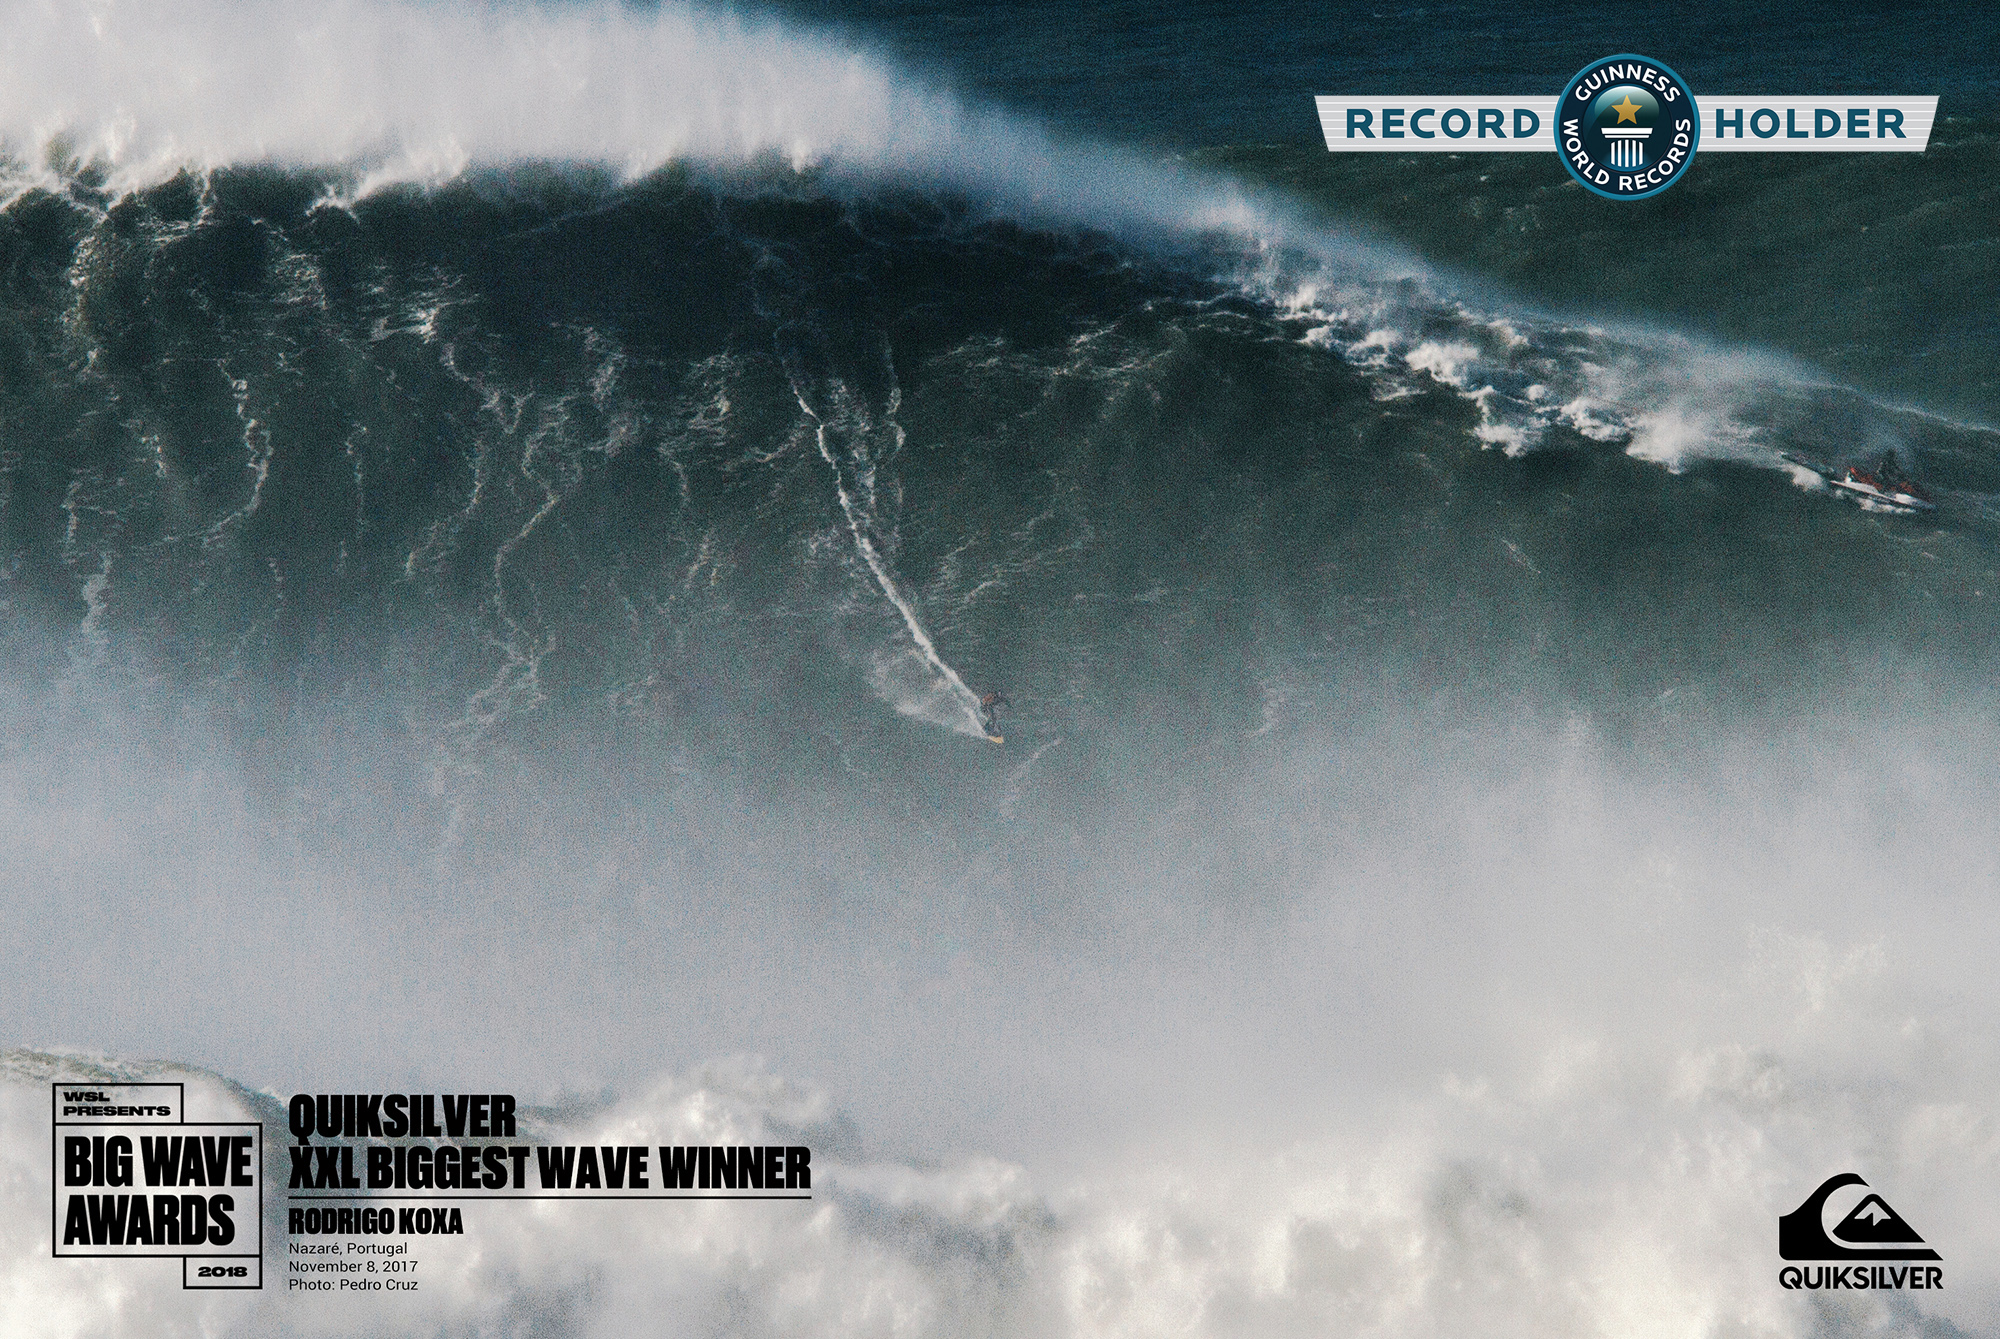 80-Footer is Biggest Wave Ever Surfed in History